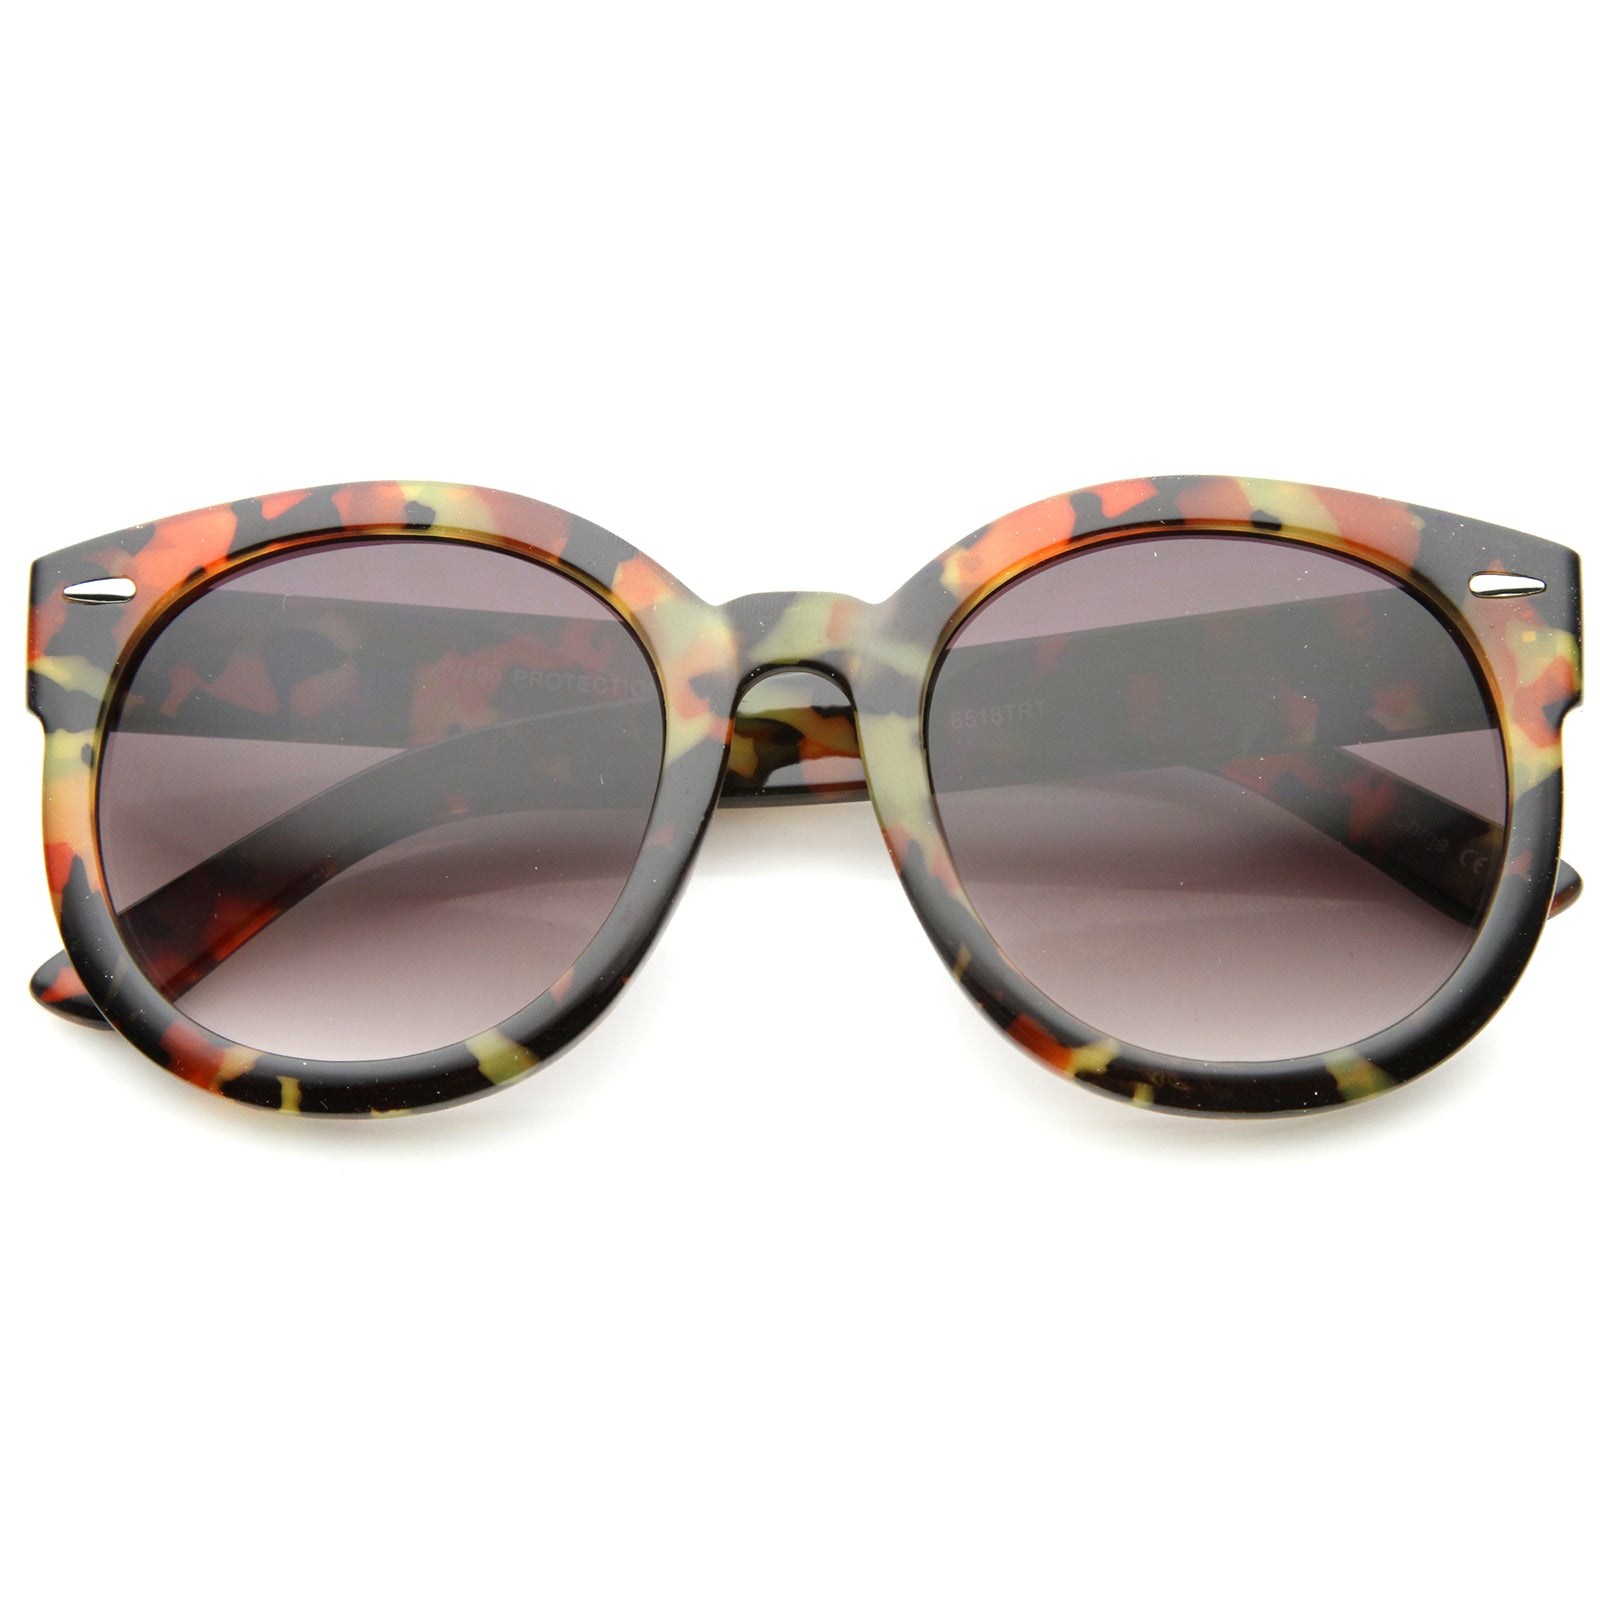 Womens Oversized Sunglasses With UV400 Protected Composite Lens - sunglass.la - 9